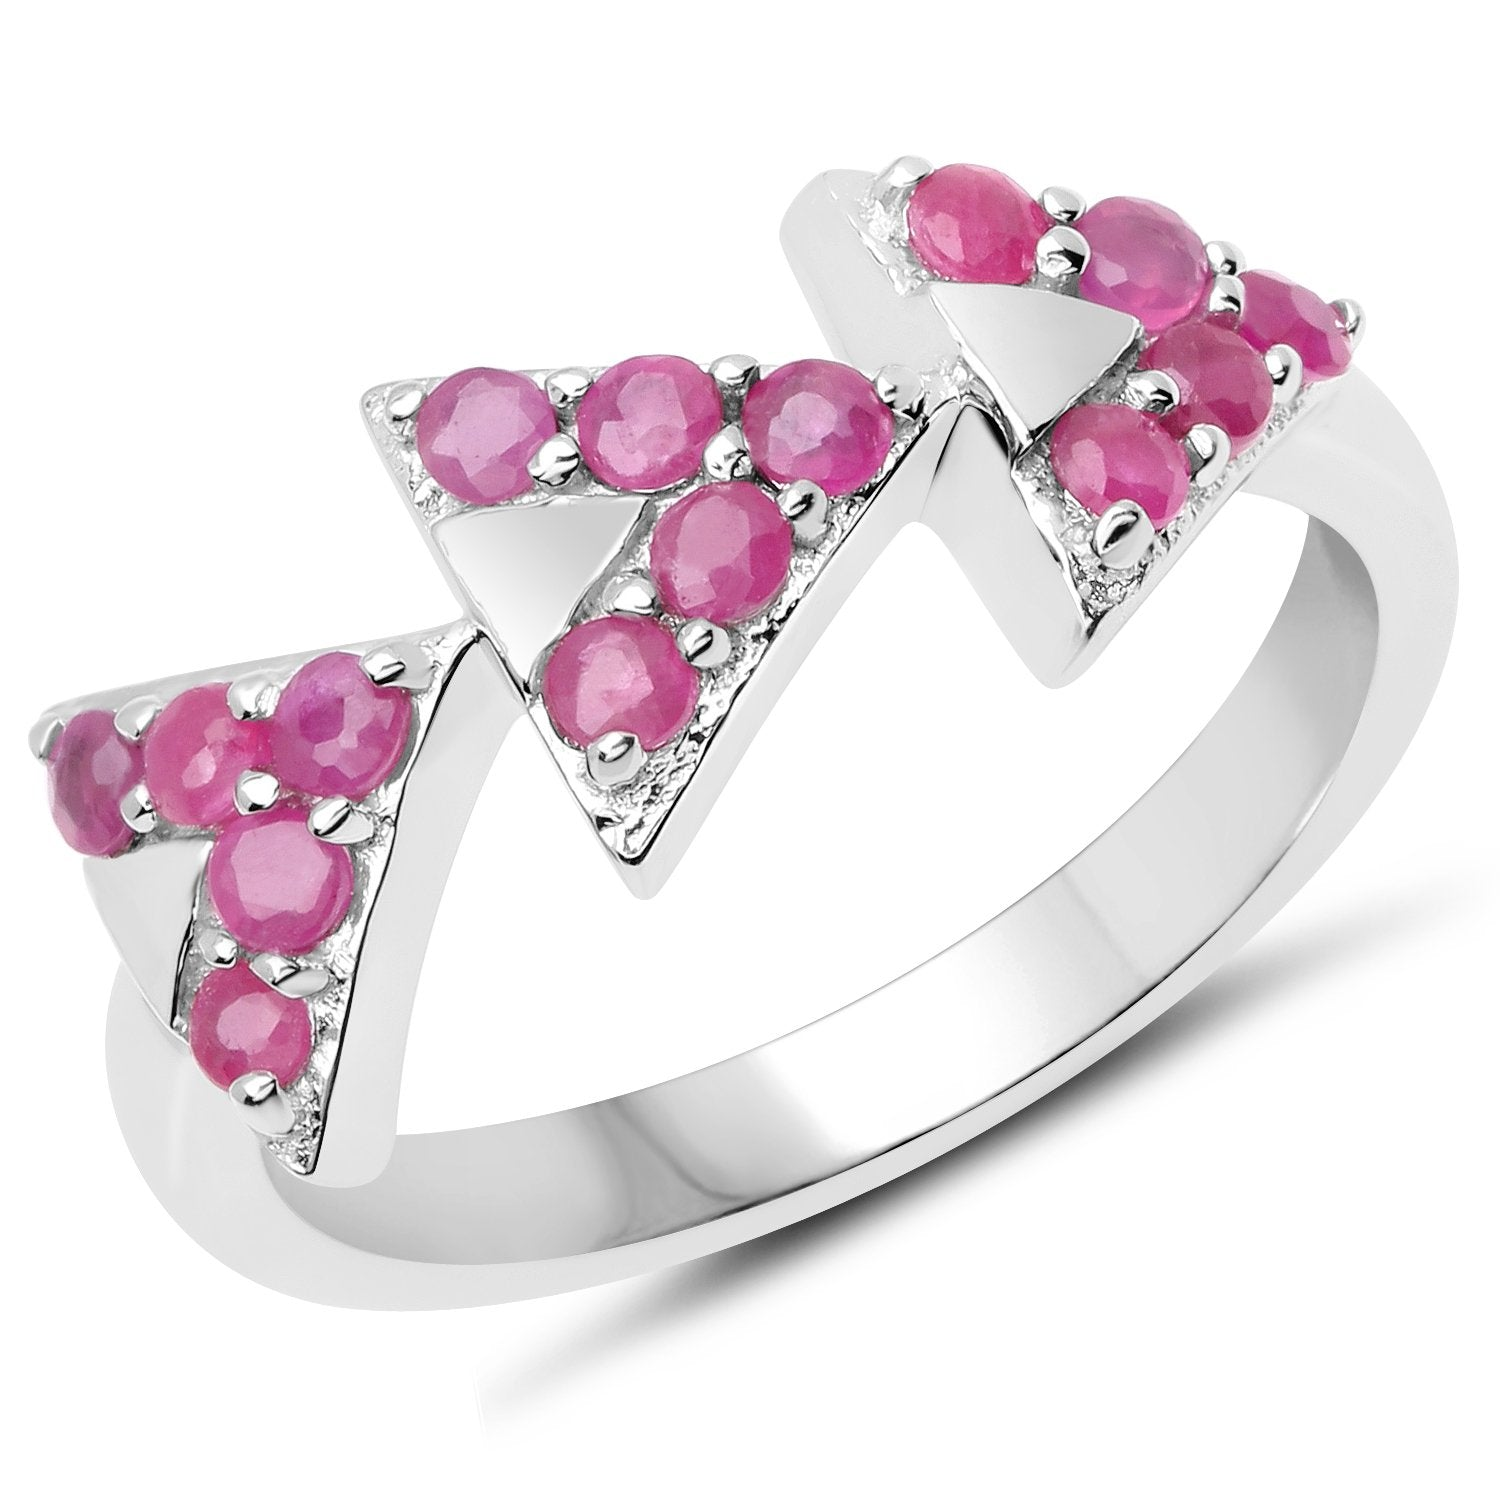 LoveHuang 0.68 Carats Genuine Ruby Arrowhead Ring Solid .925 Sterling Silver With Rhodium Plating